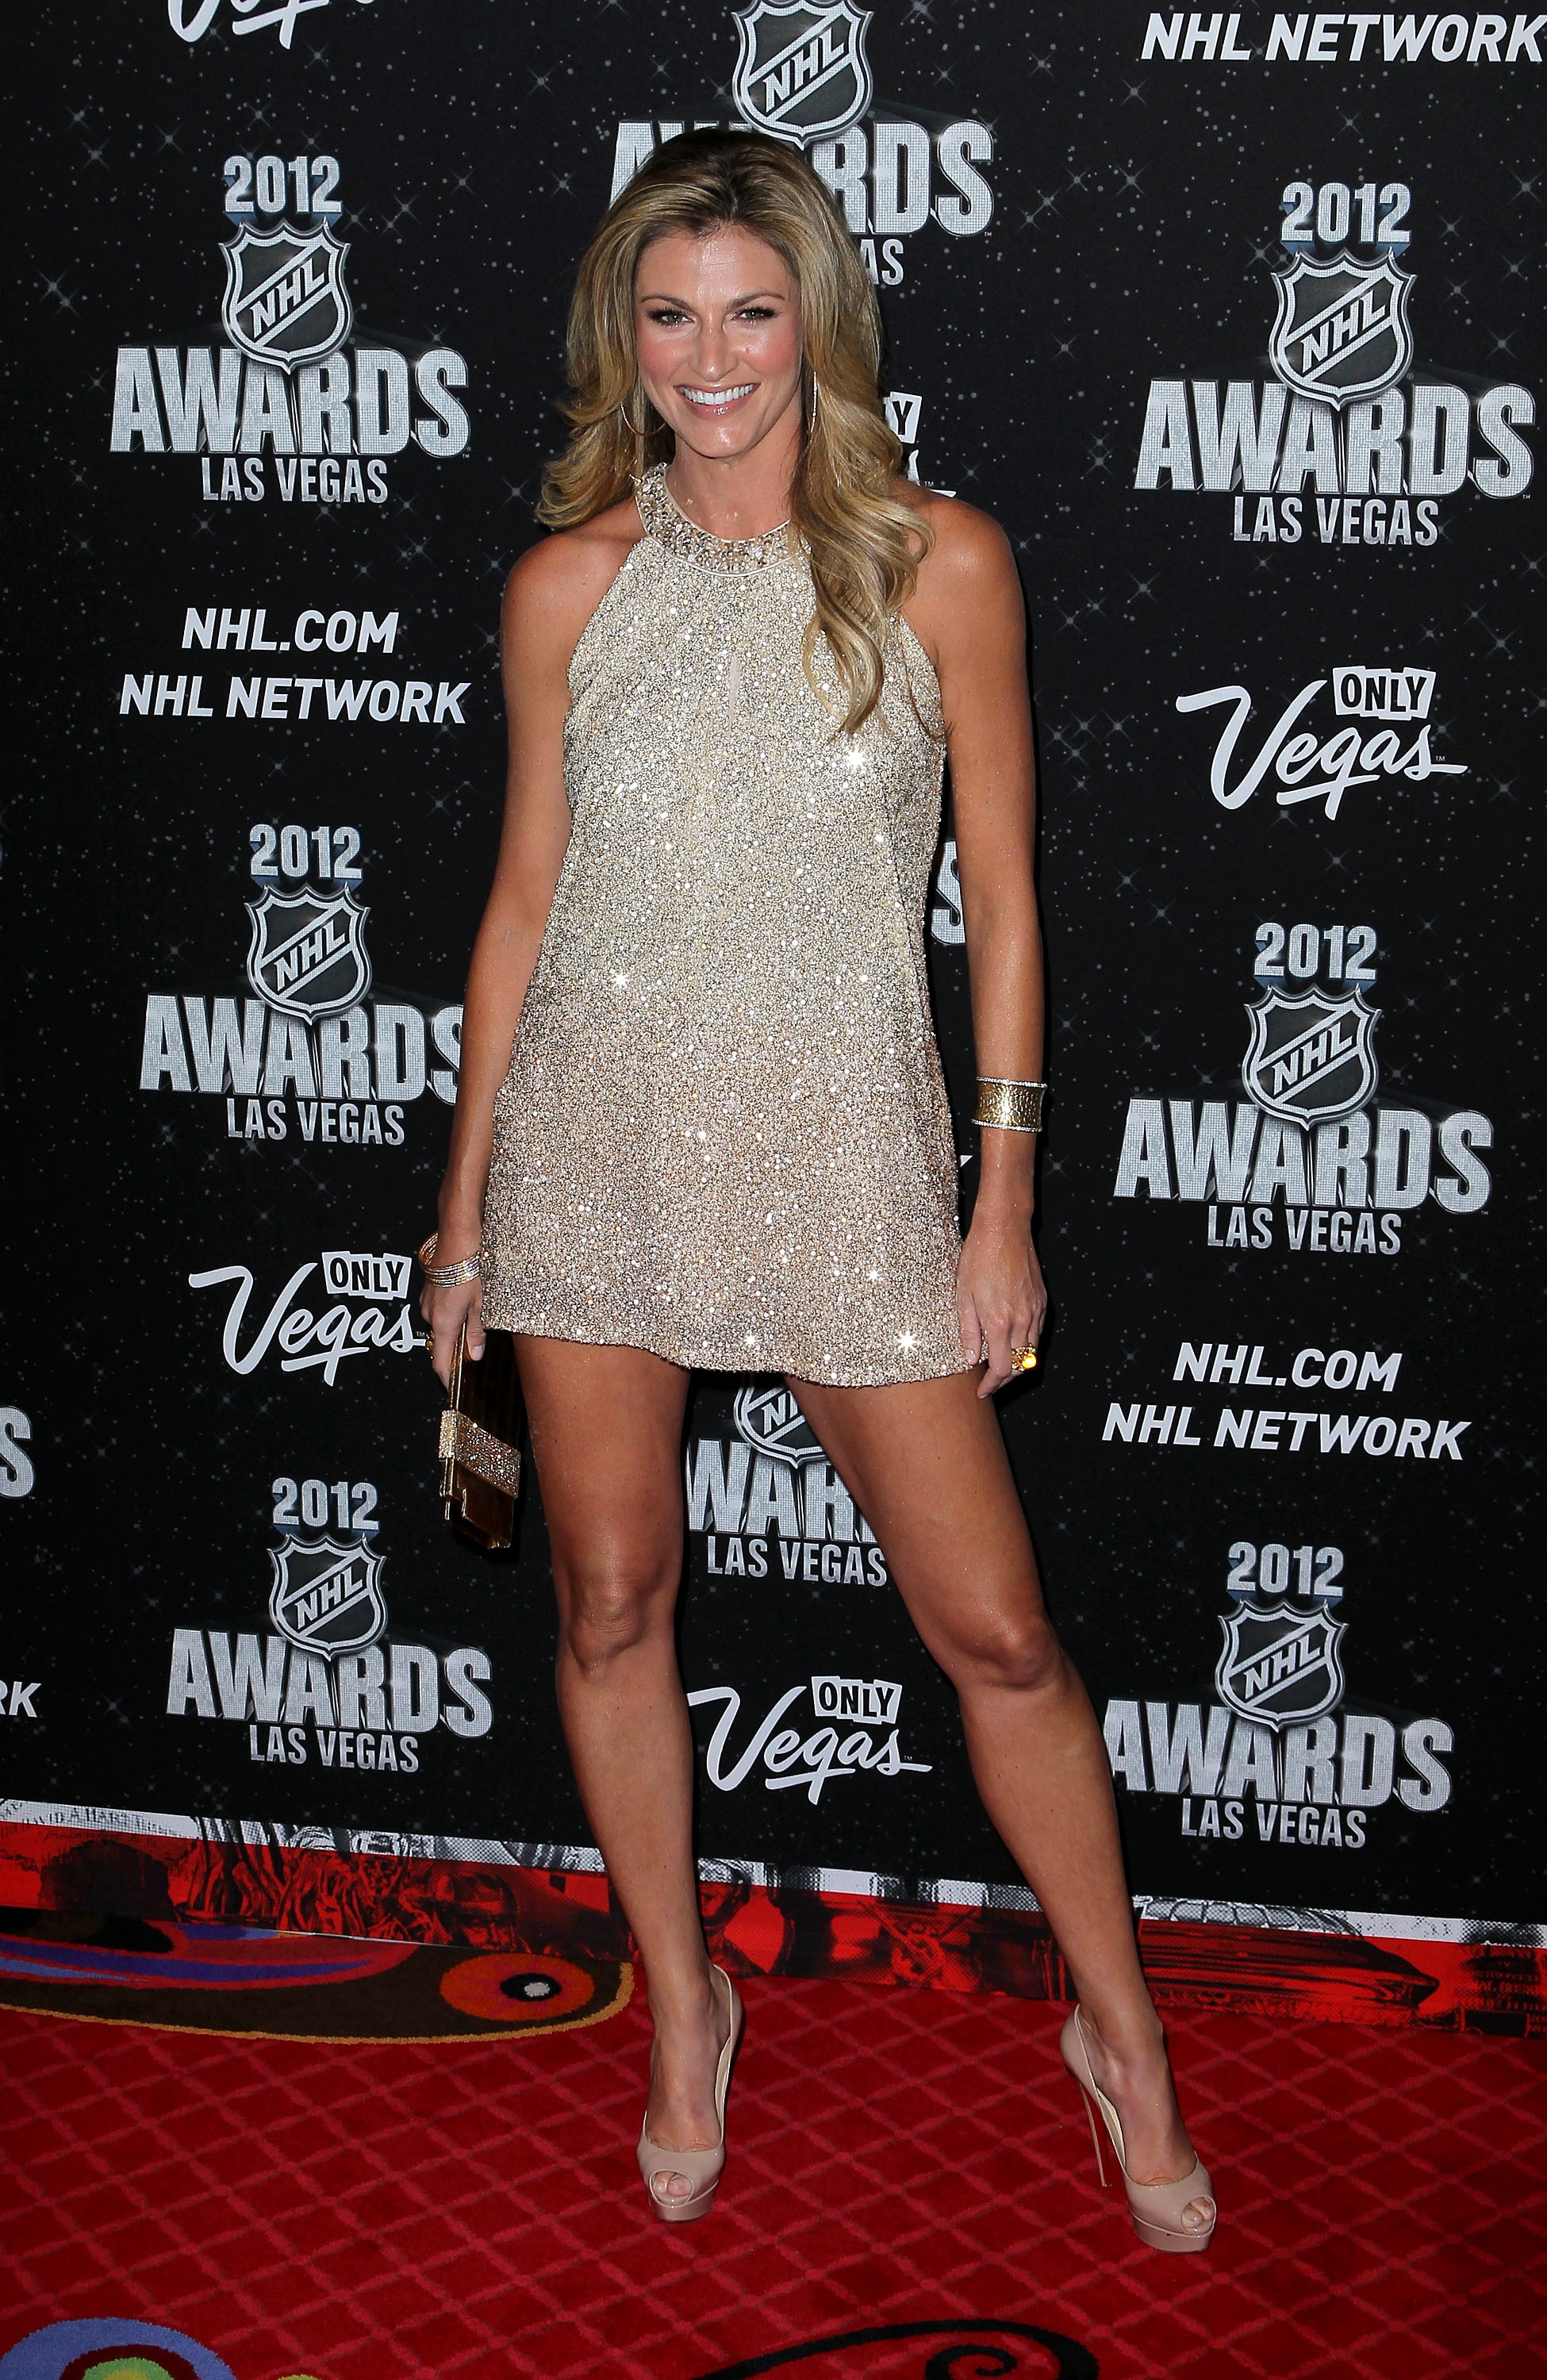 Erin andrews feet pics